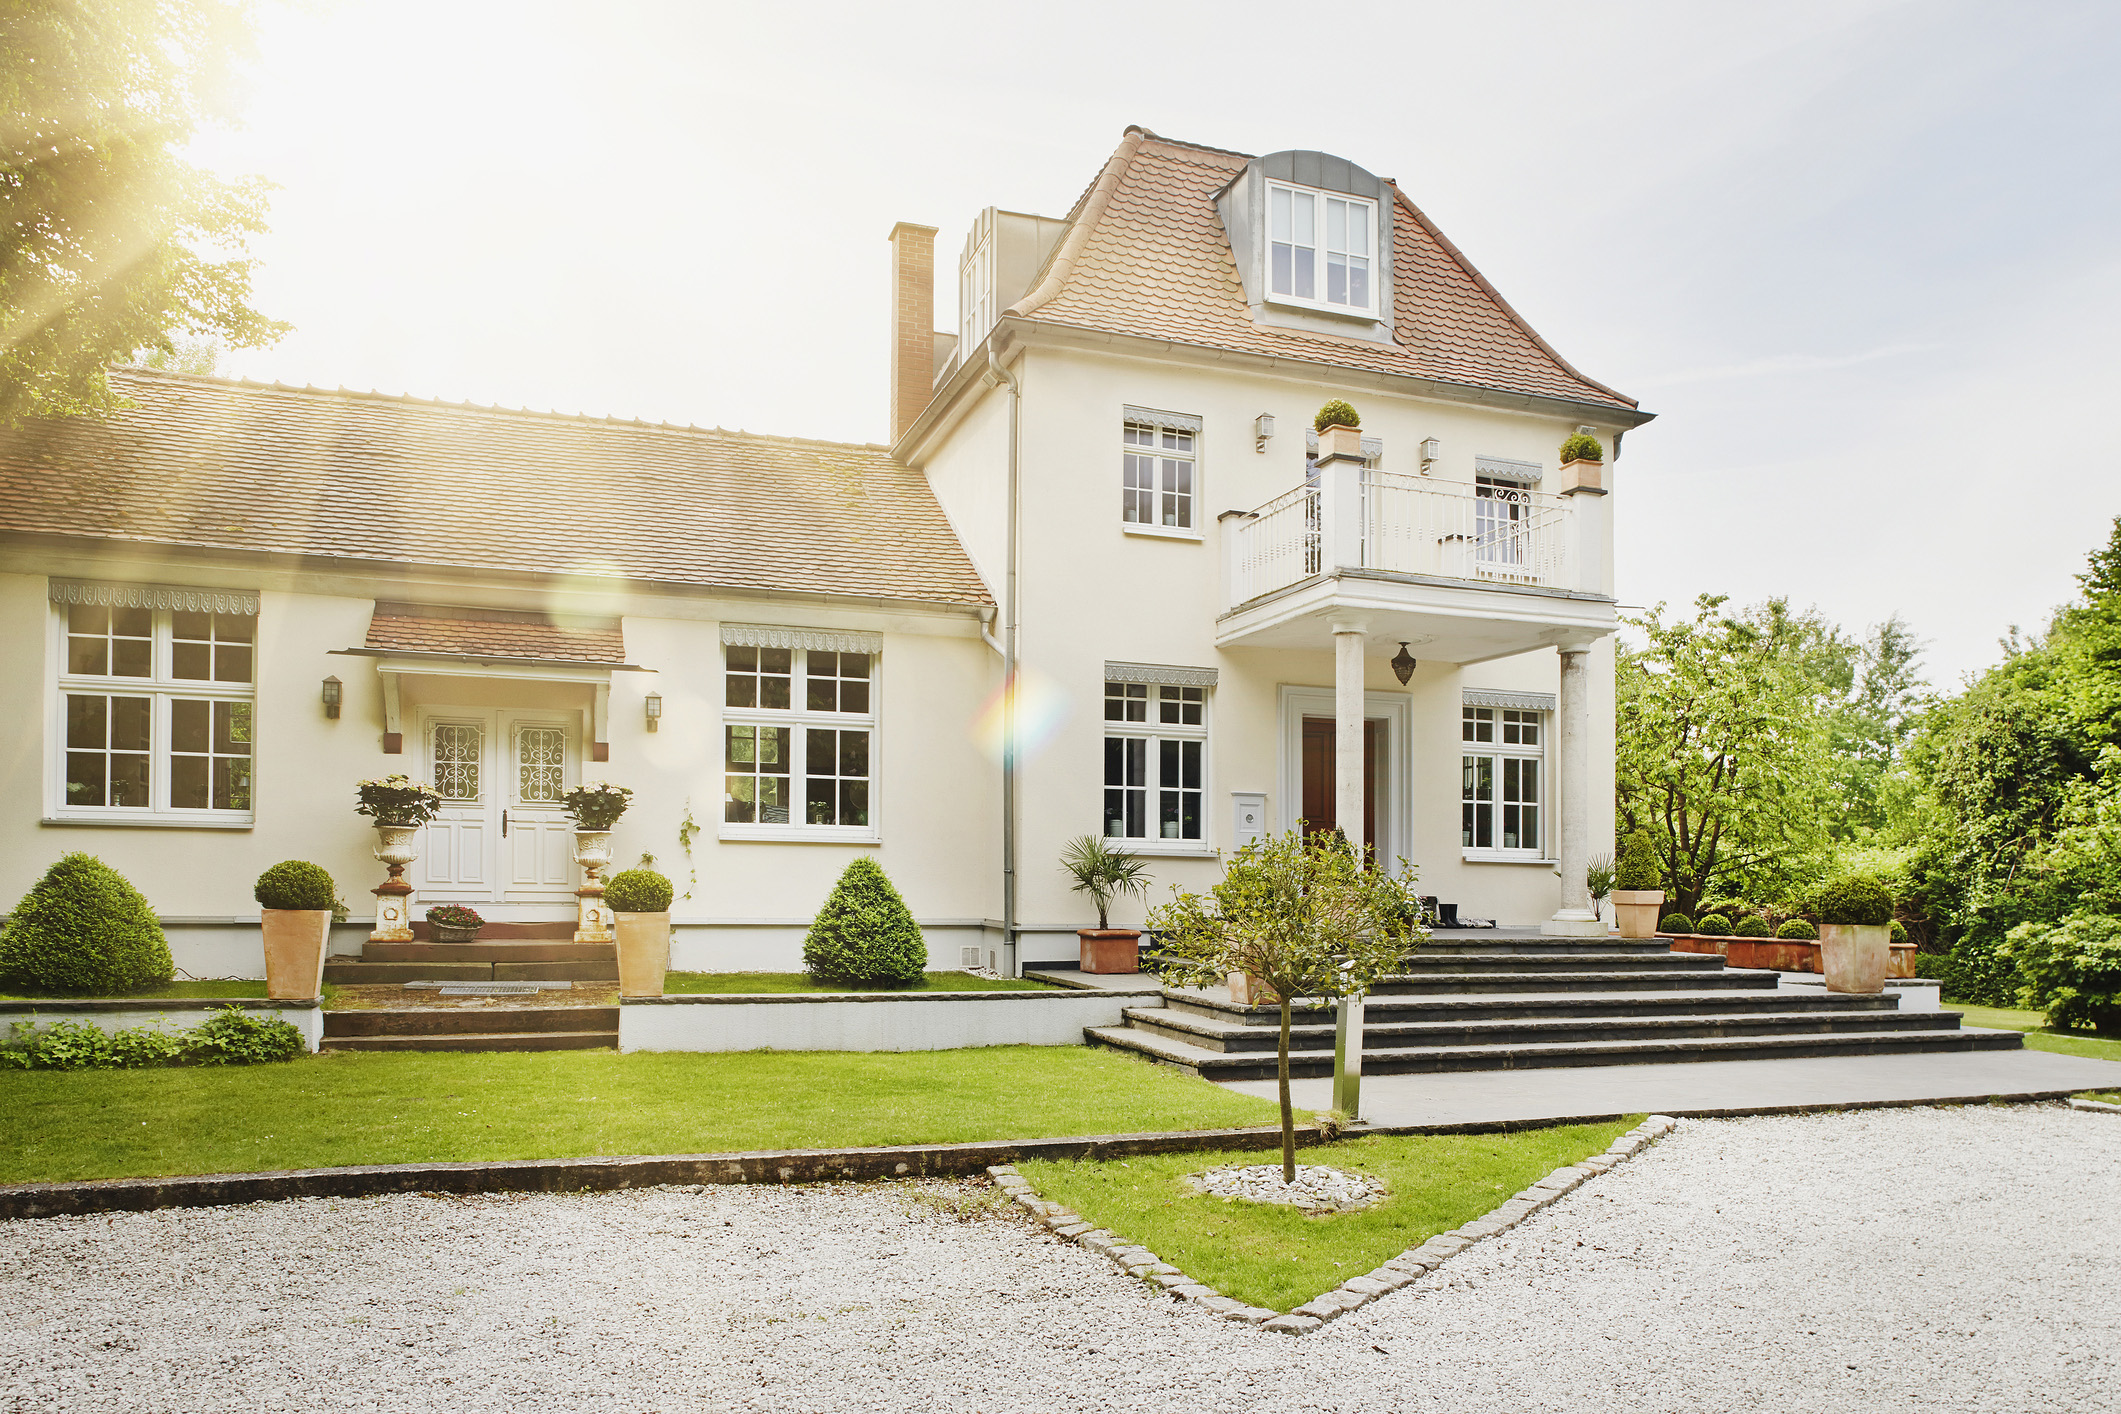 13 popular architectural styles to consider while house for Popular architectural styles